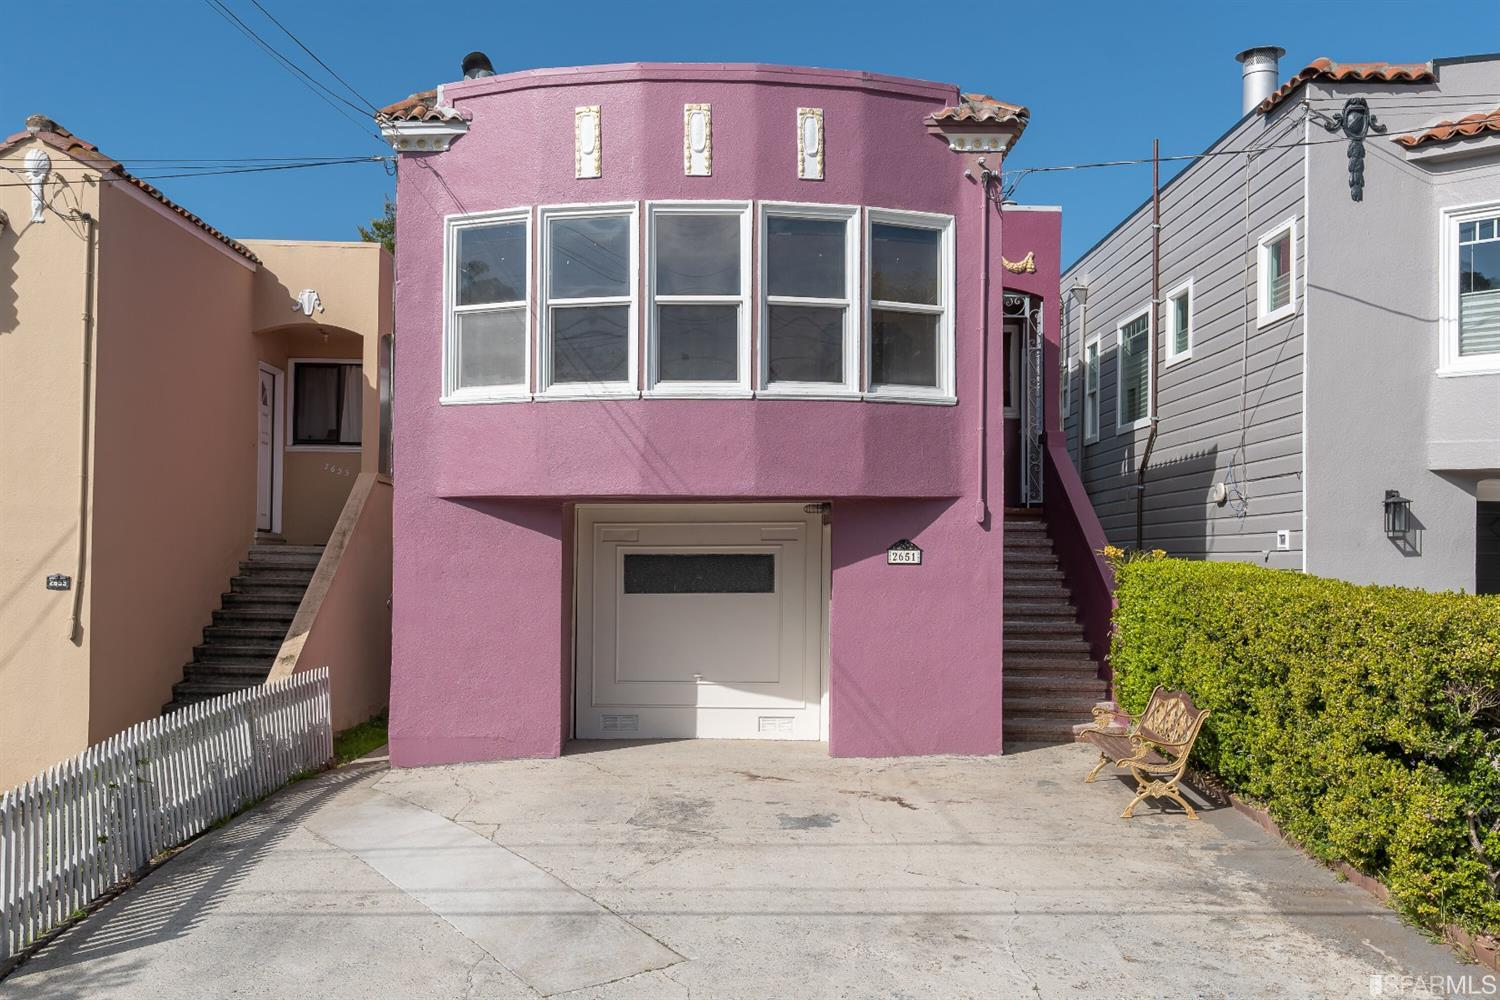 Pandemic Pricing?  Or Just Another Crazy Overbid? SF Property Sells $360,000 Over Asking